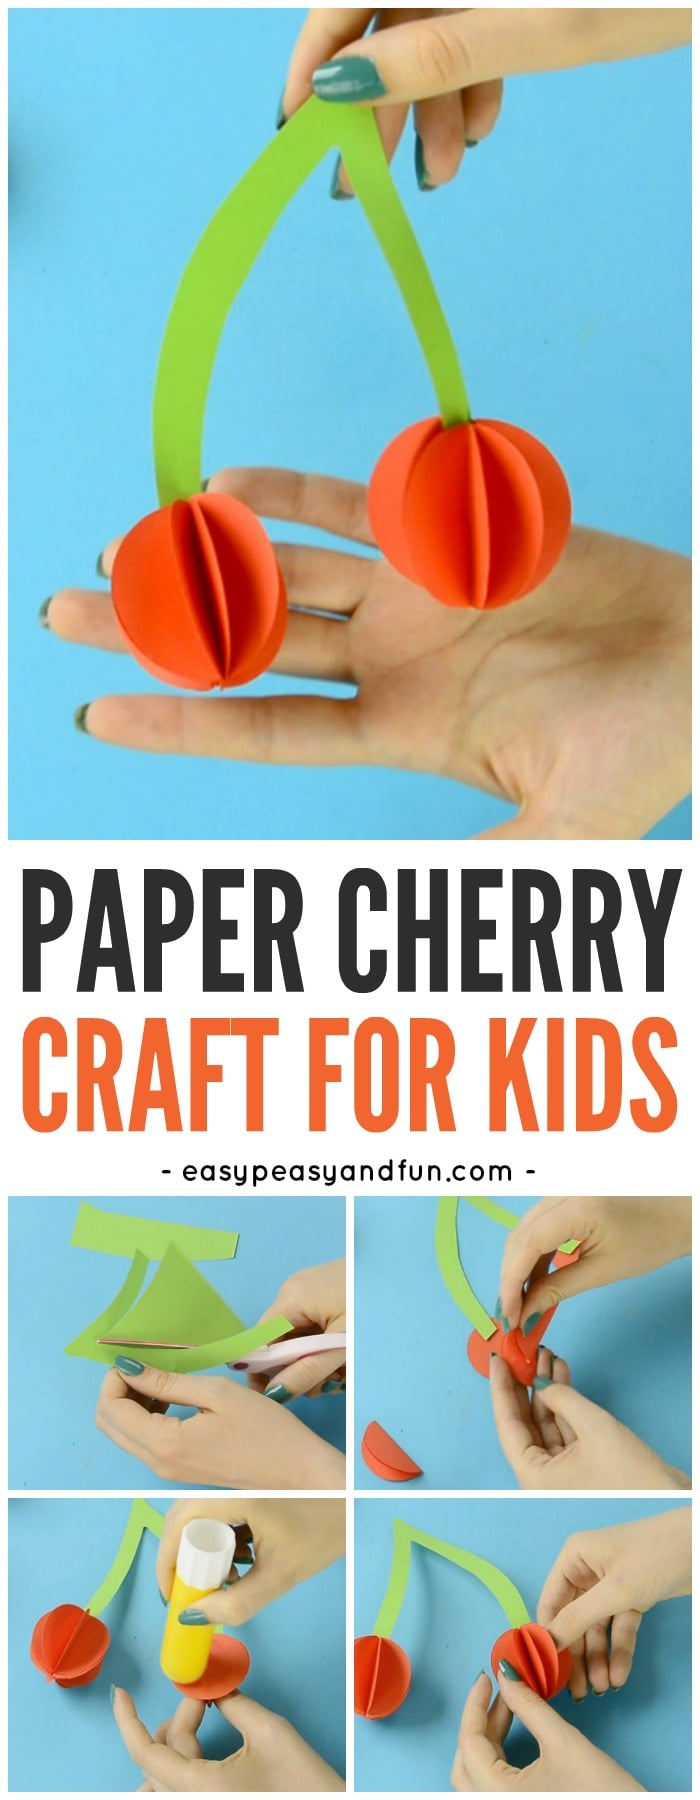 Fun Paper Cherry Craft for Kids